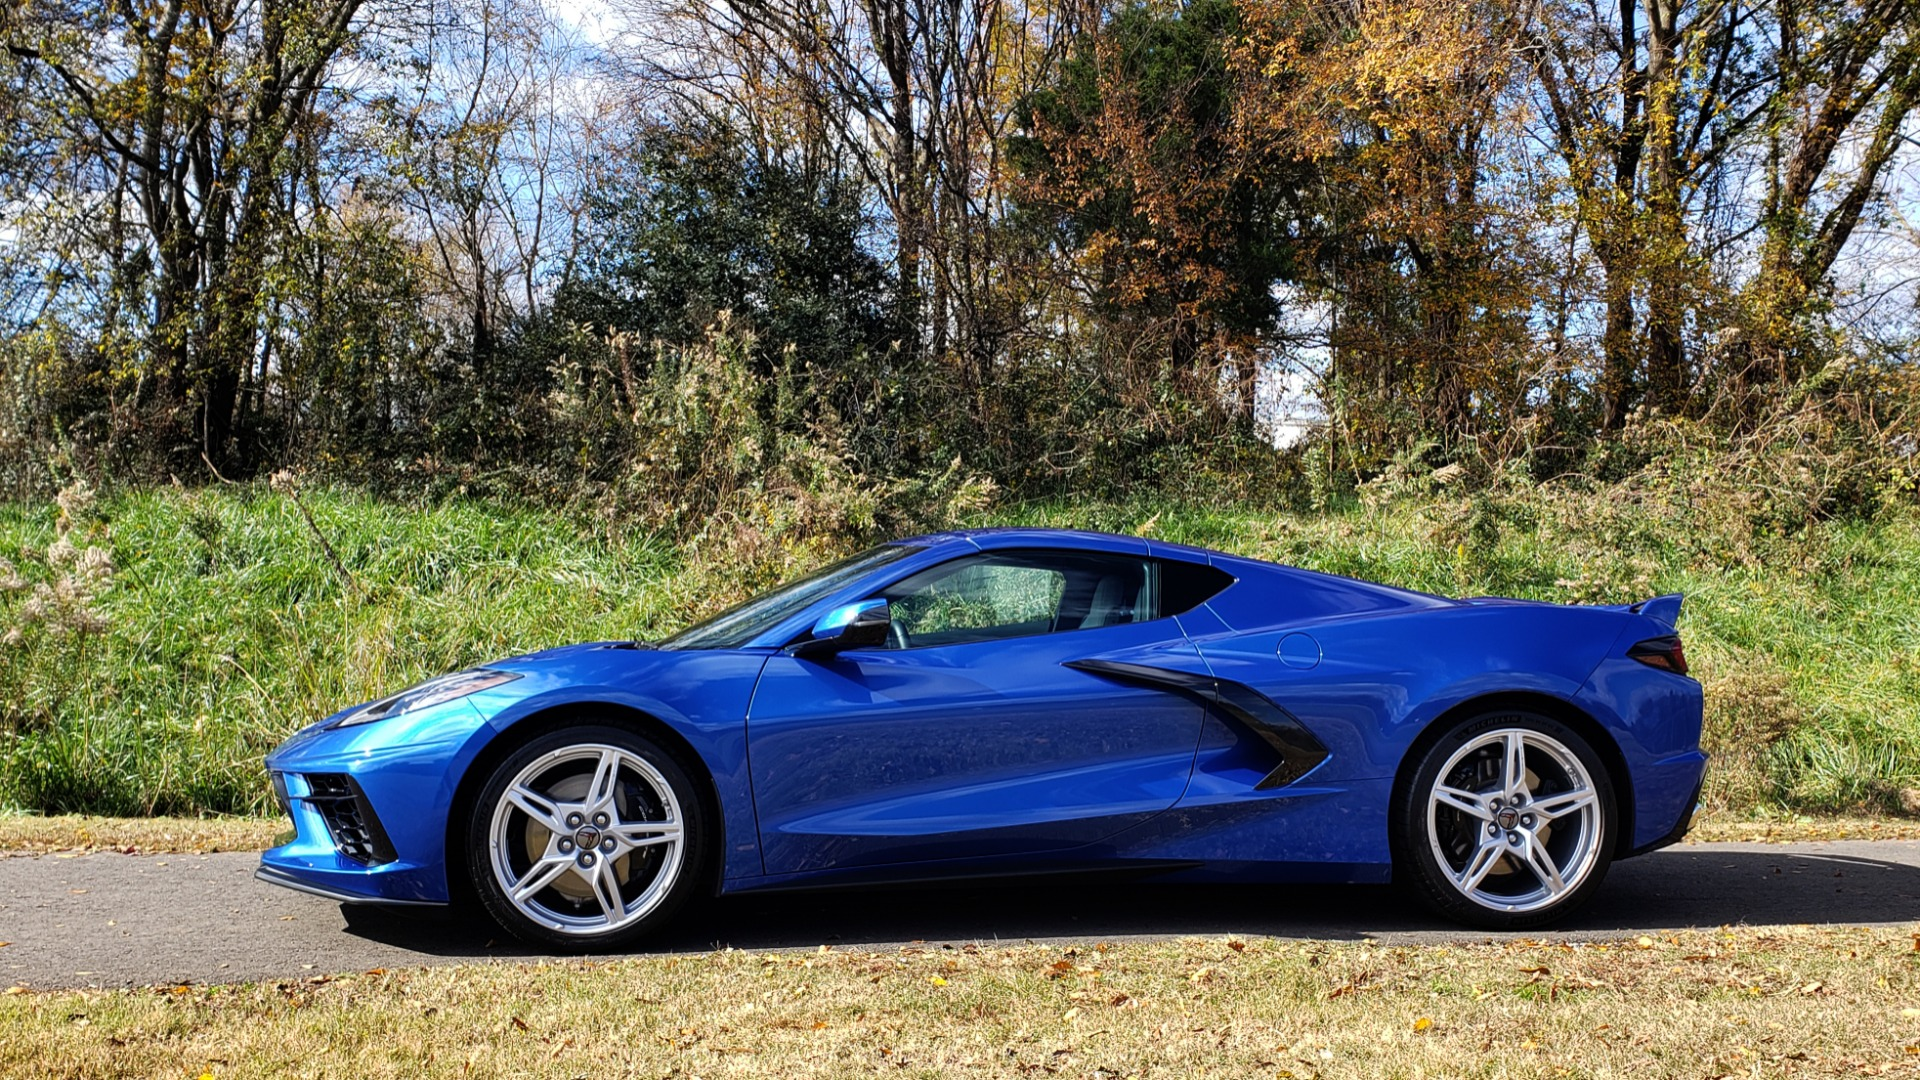 Used 2020 Chevrolet C8 CORVETTE STINGRAY 2LT COUPE / NAV / HUD / BOSE / GT2 SEATS / FRONT LIFT / REARVIEW for sale $98,999 at Formula Imports in Charlotte NC 28227 10